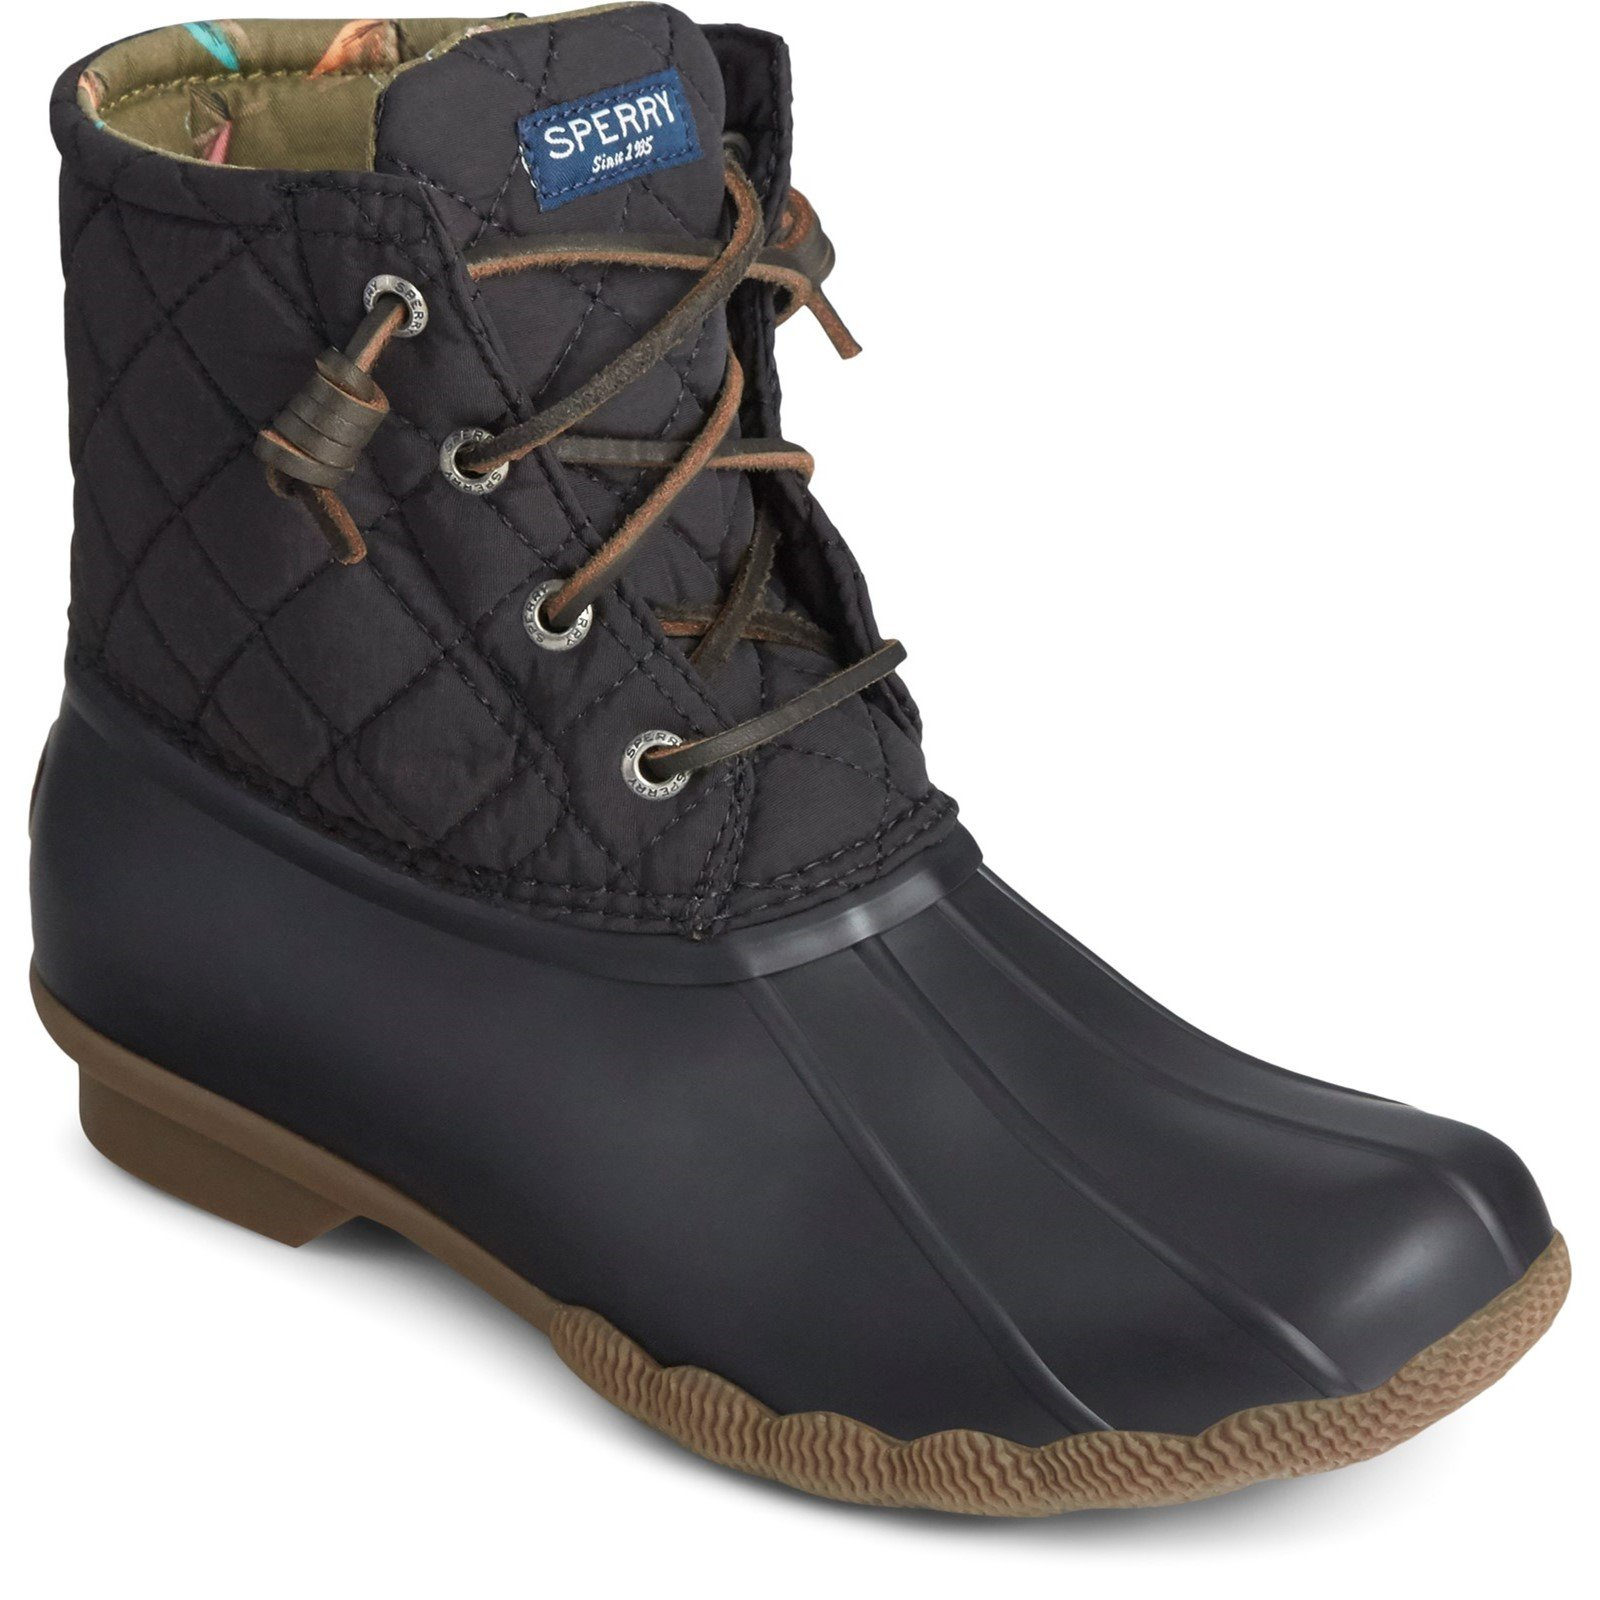 Sperry Women's Saltwater Quilted Duck Weather Boot Black 32439 - Black 5